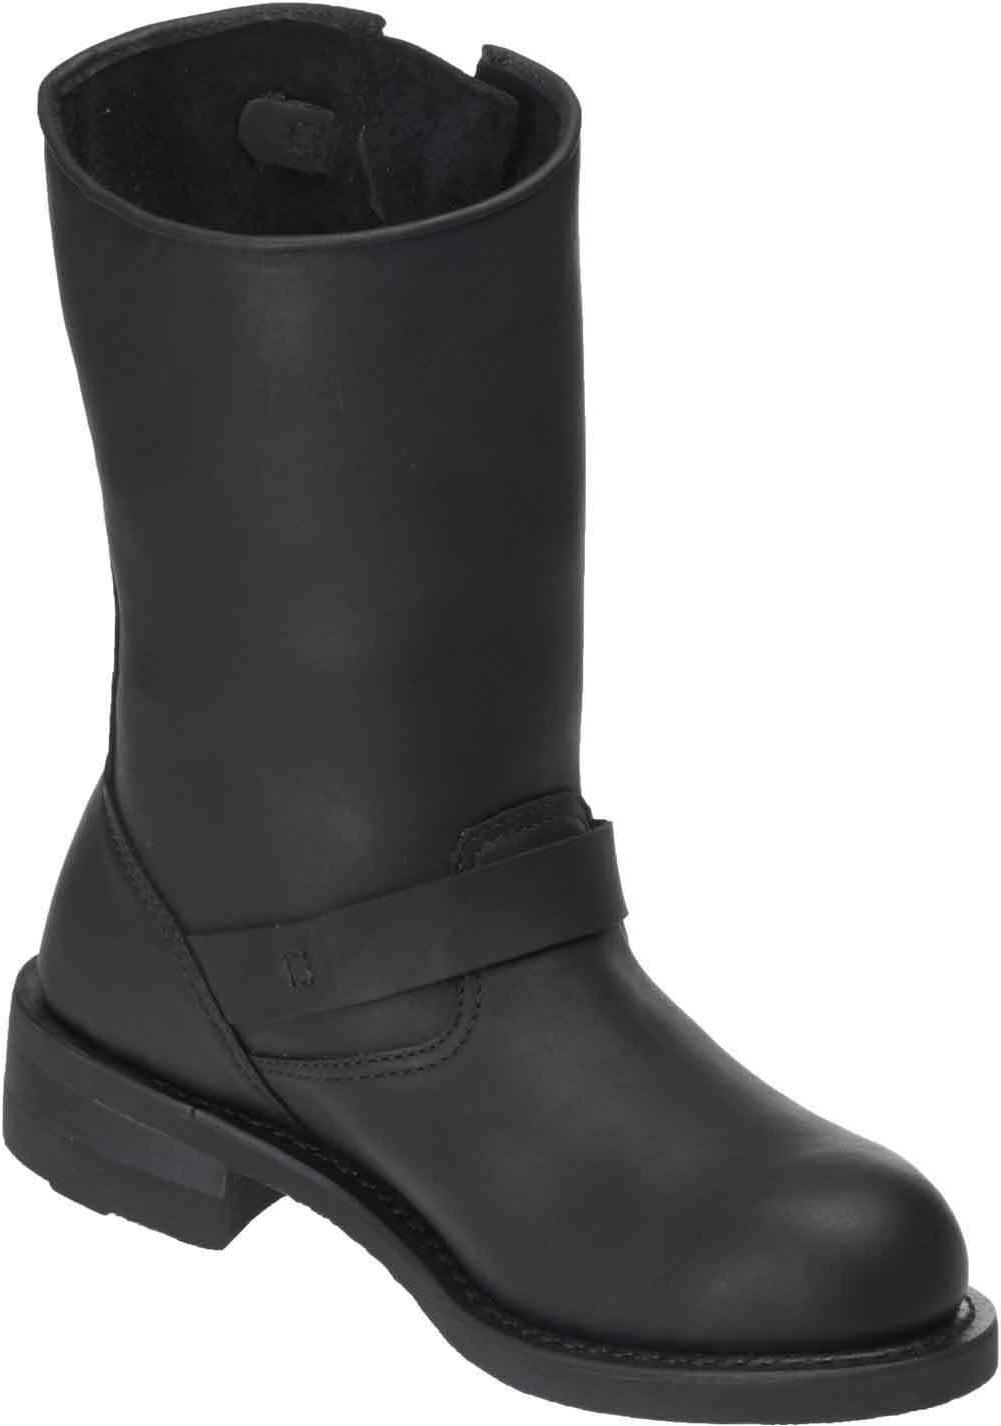 Men's Pull-On Engineer Boots D93309